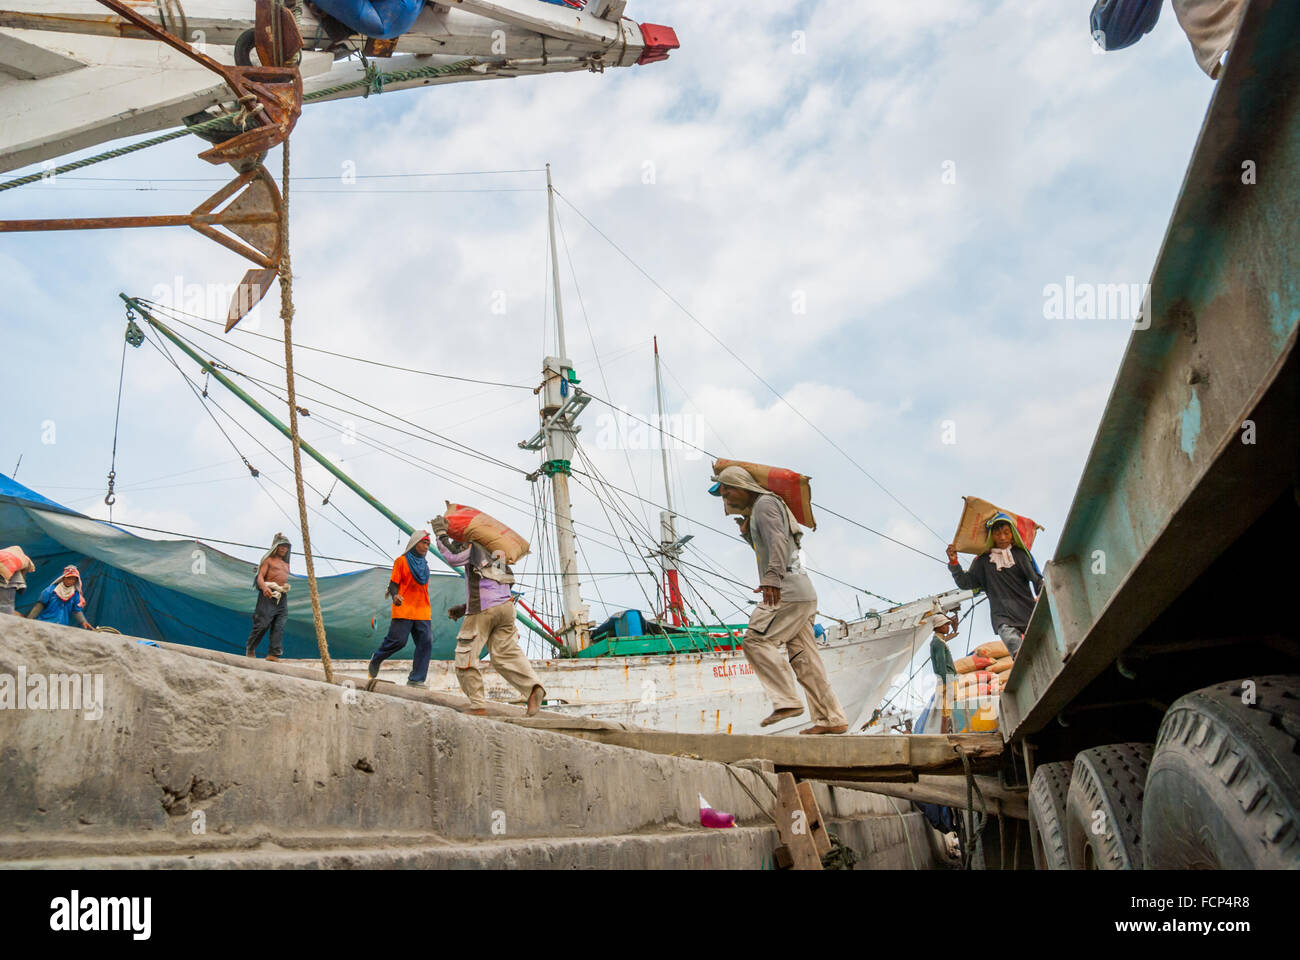 Workers loading cements onto wooden ship at Sunda Kelapa traditional harbour. Jakarta, Indonesia. - Stock Image